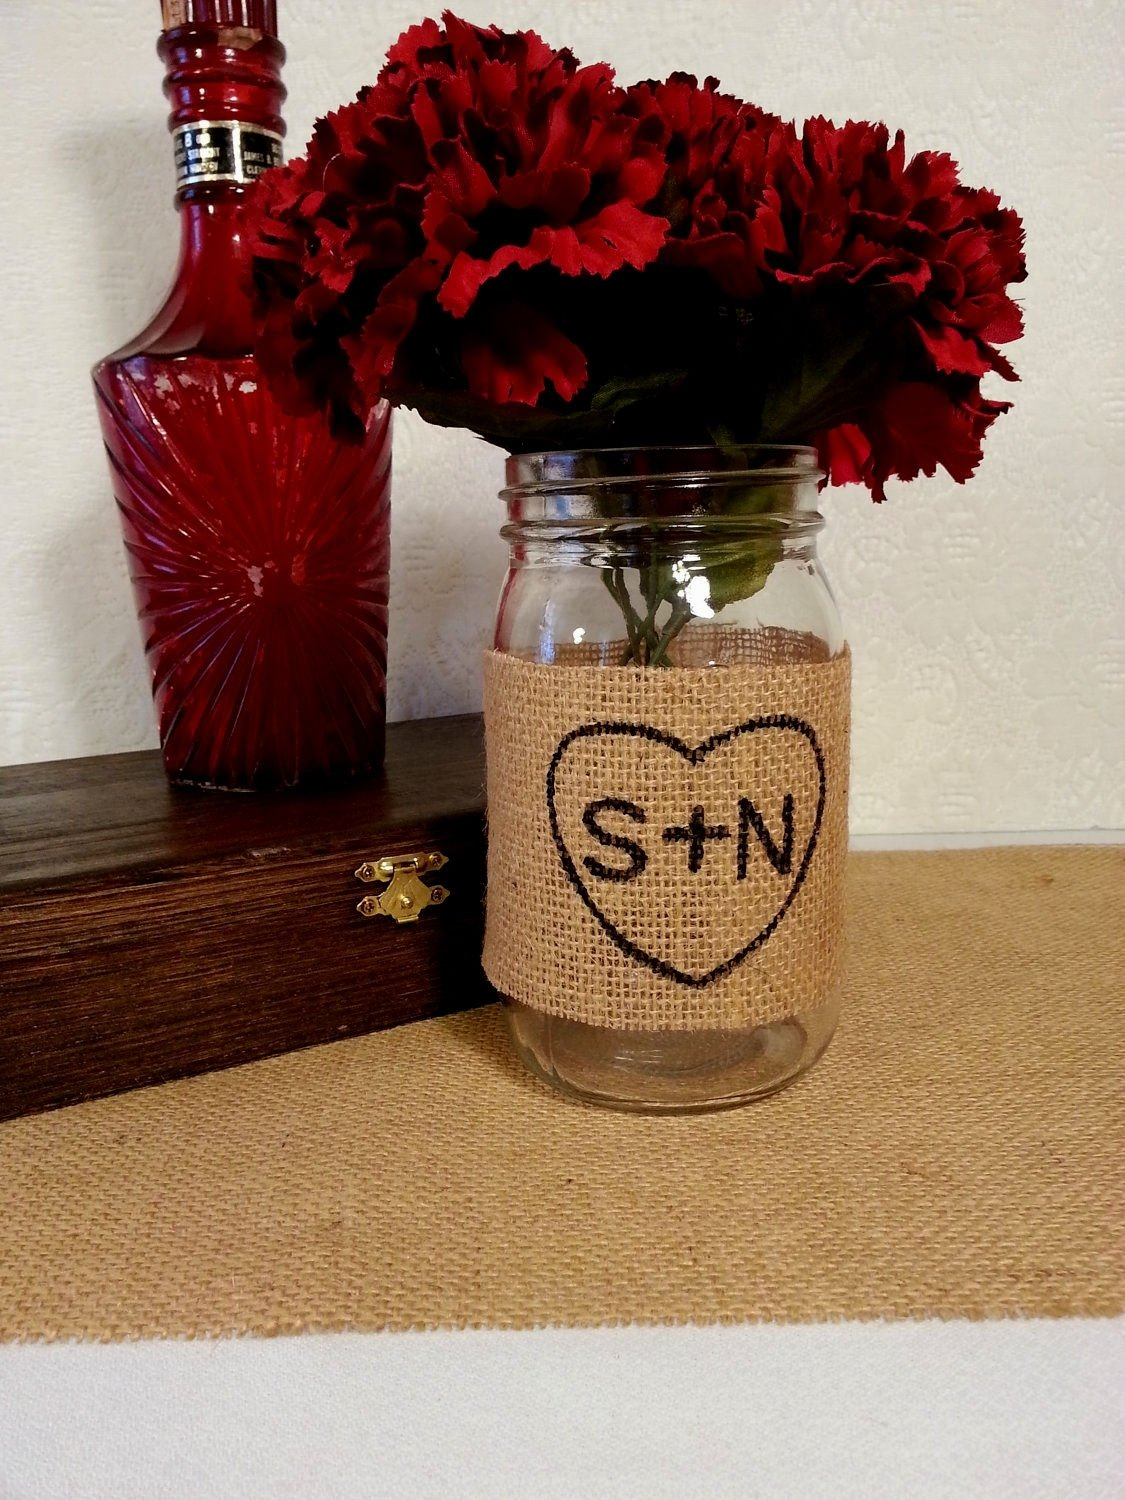 10 Stylish Mason Jar Wedding Centerpiece Ideas mason jar wedding decor ideas decorating of party 2020